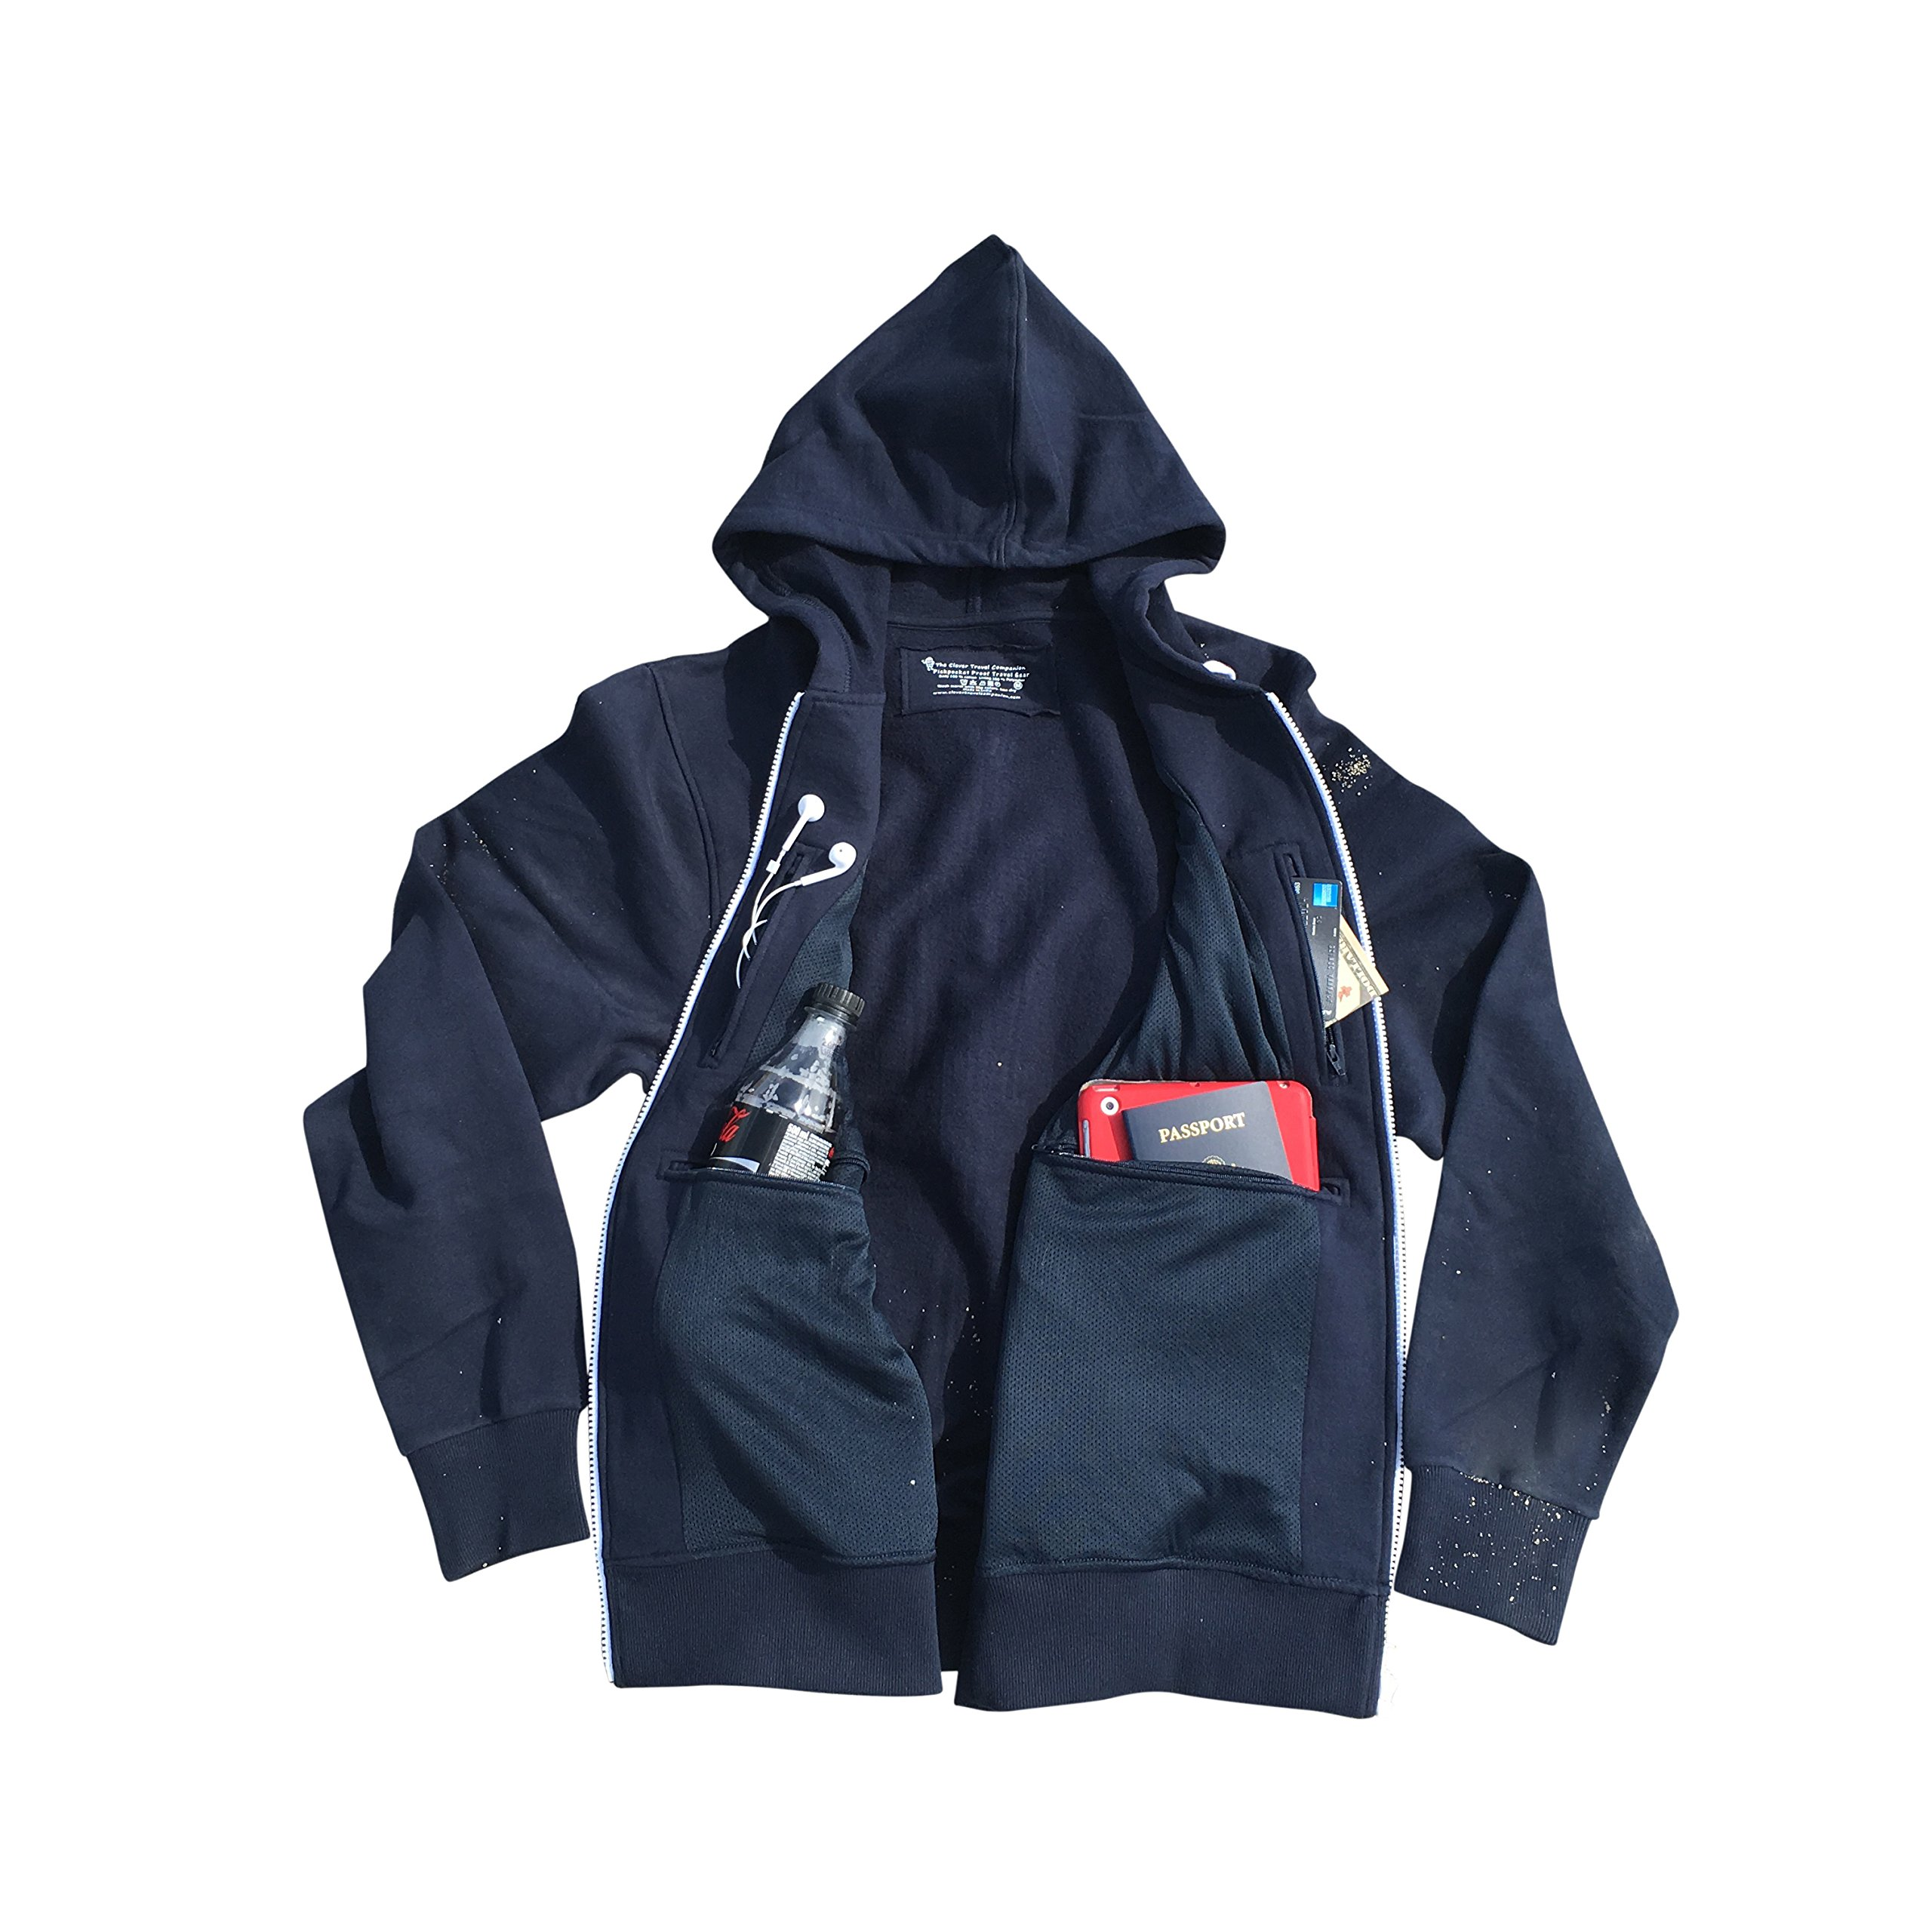 Smart Travel Hoodie with Multiple Concealed Secret Pockets (Large) by Clever Travel Companion